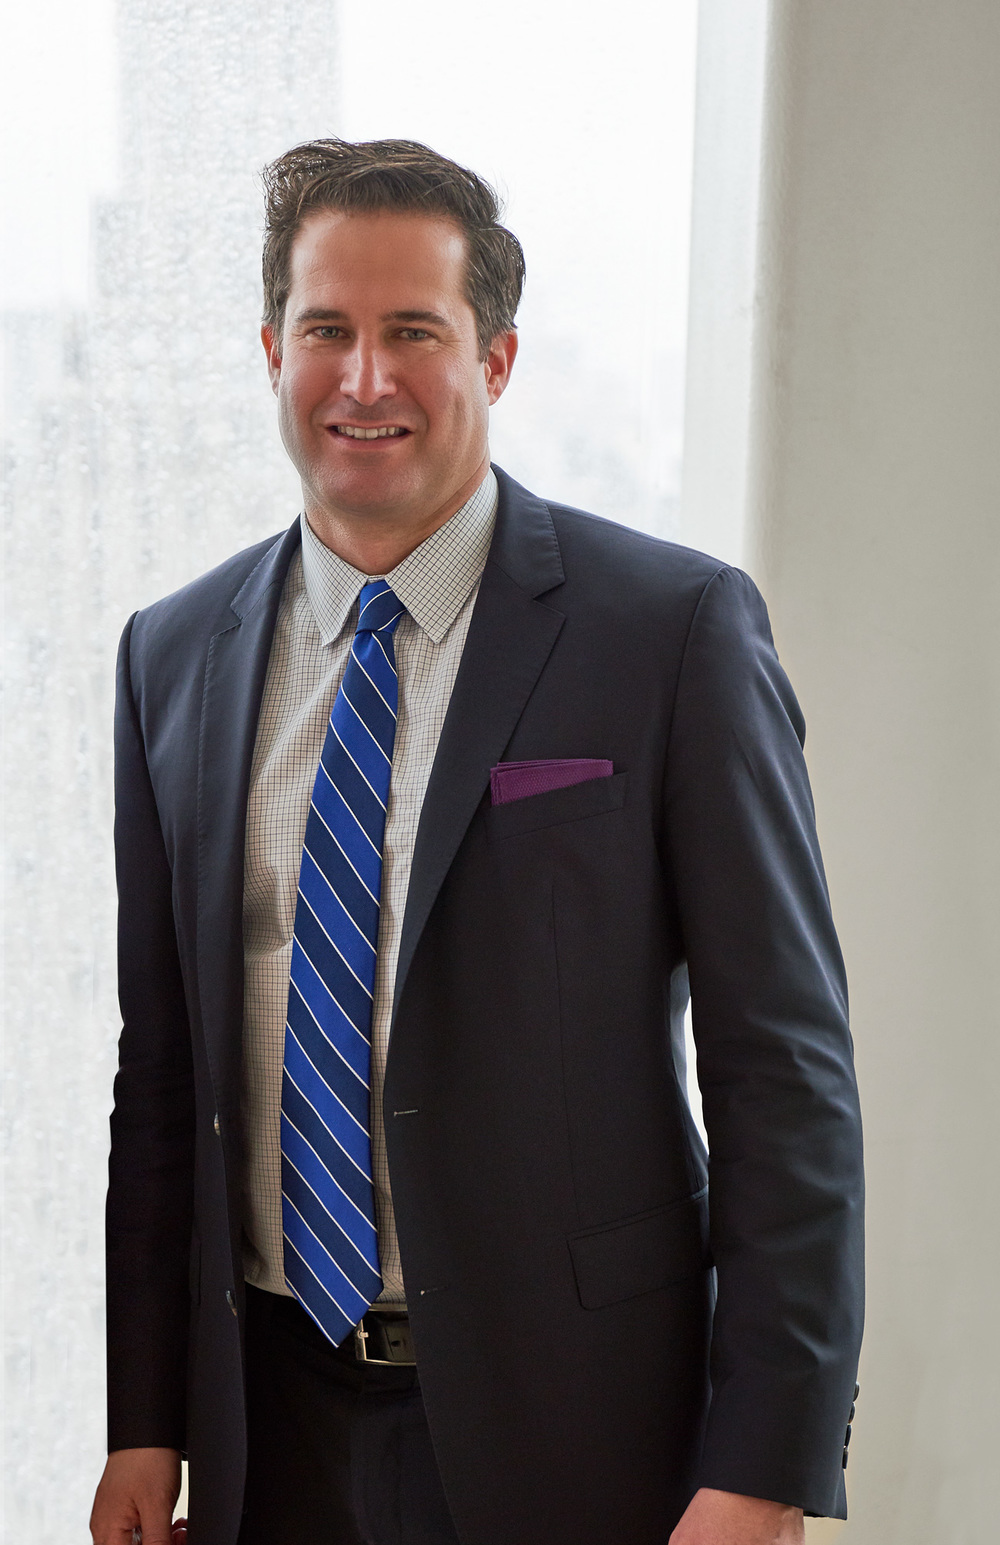 U.S. Representative Seth Moulton, 6th Congressional District of Massachusetts.